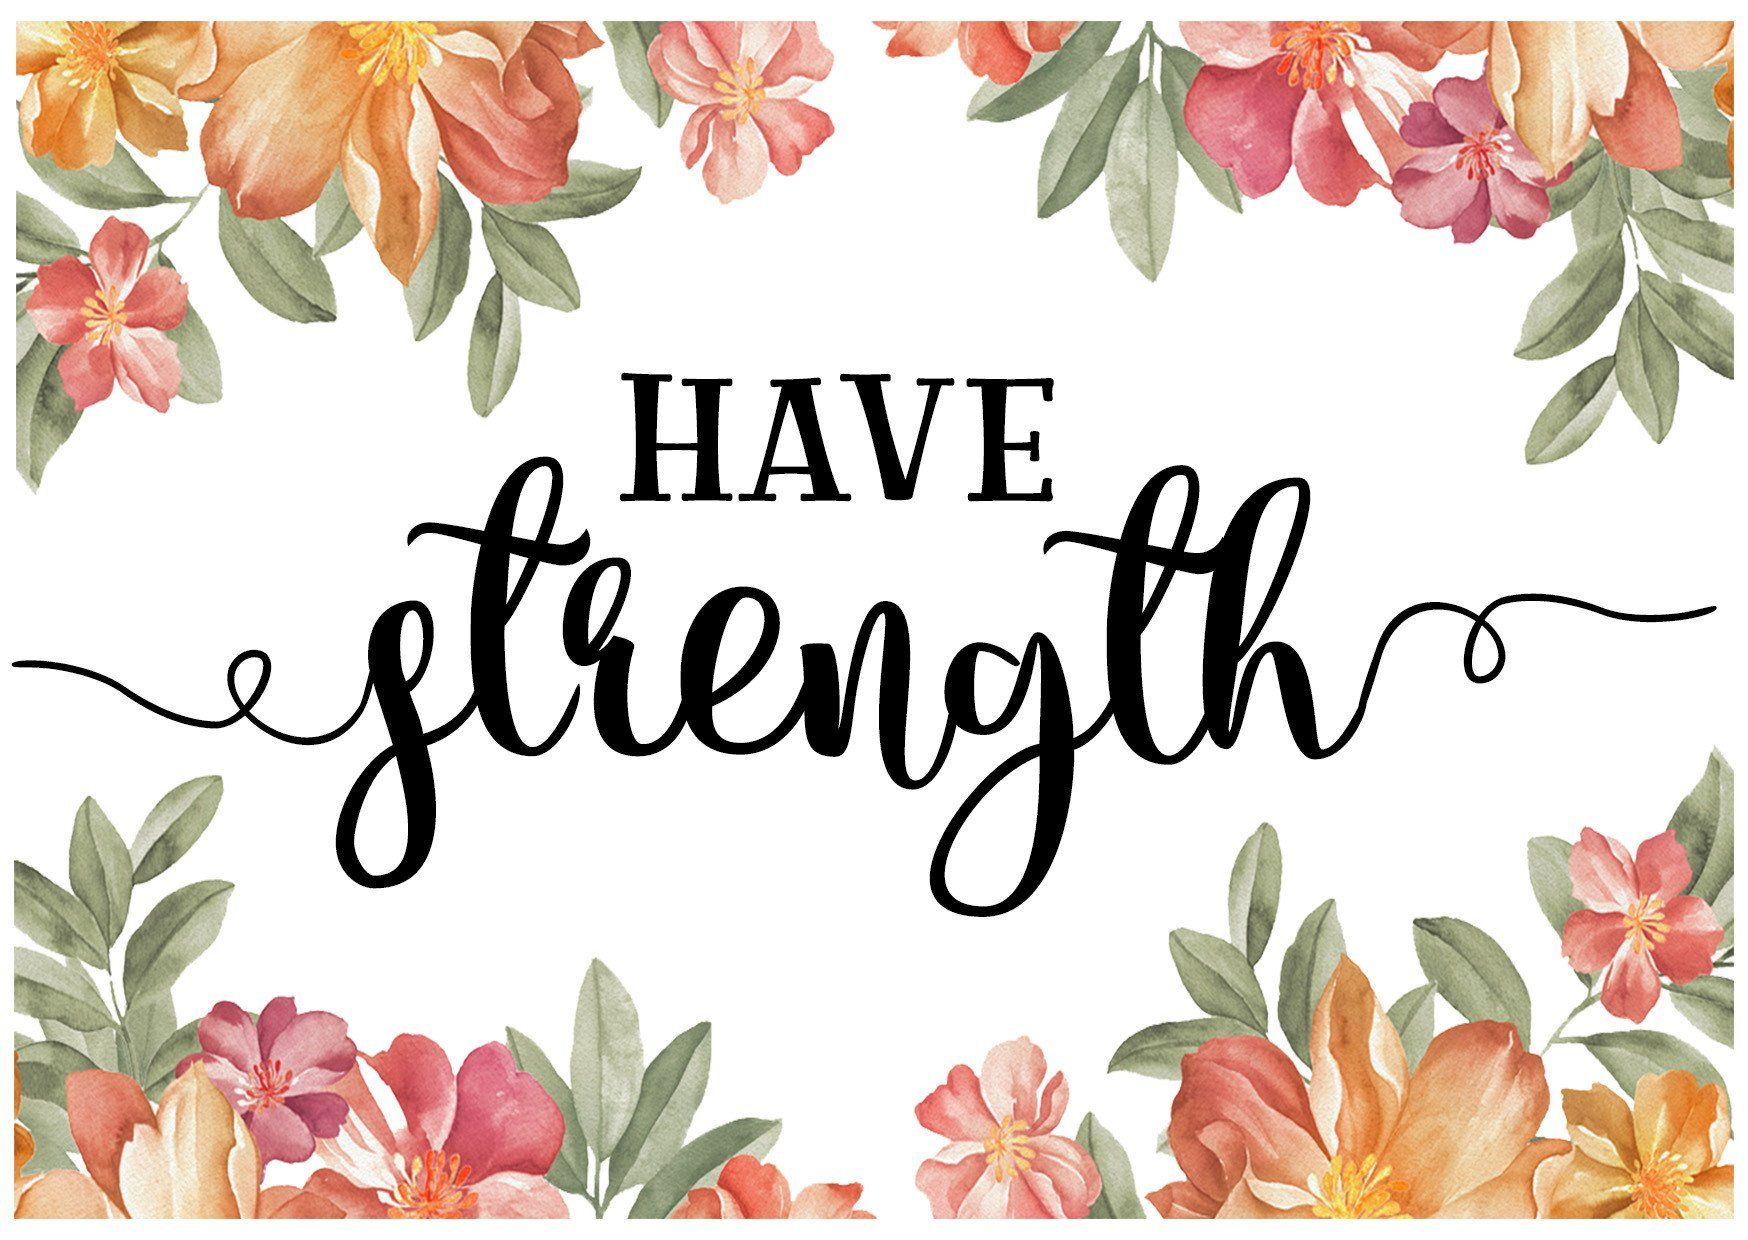 Have Strength Card Print - Encouragement Cards - Peonies In Print - Naiise